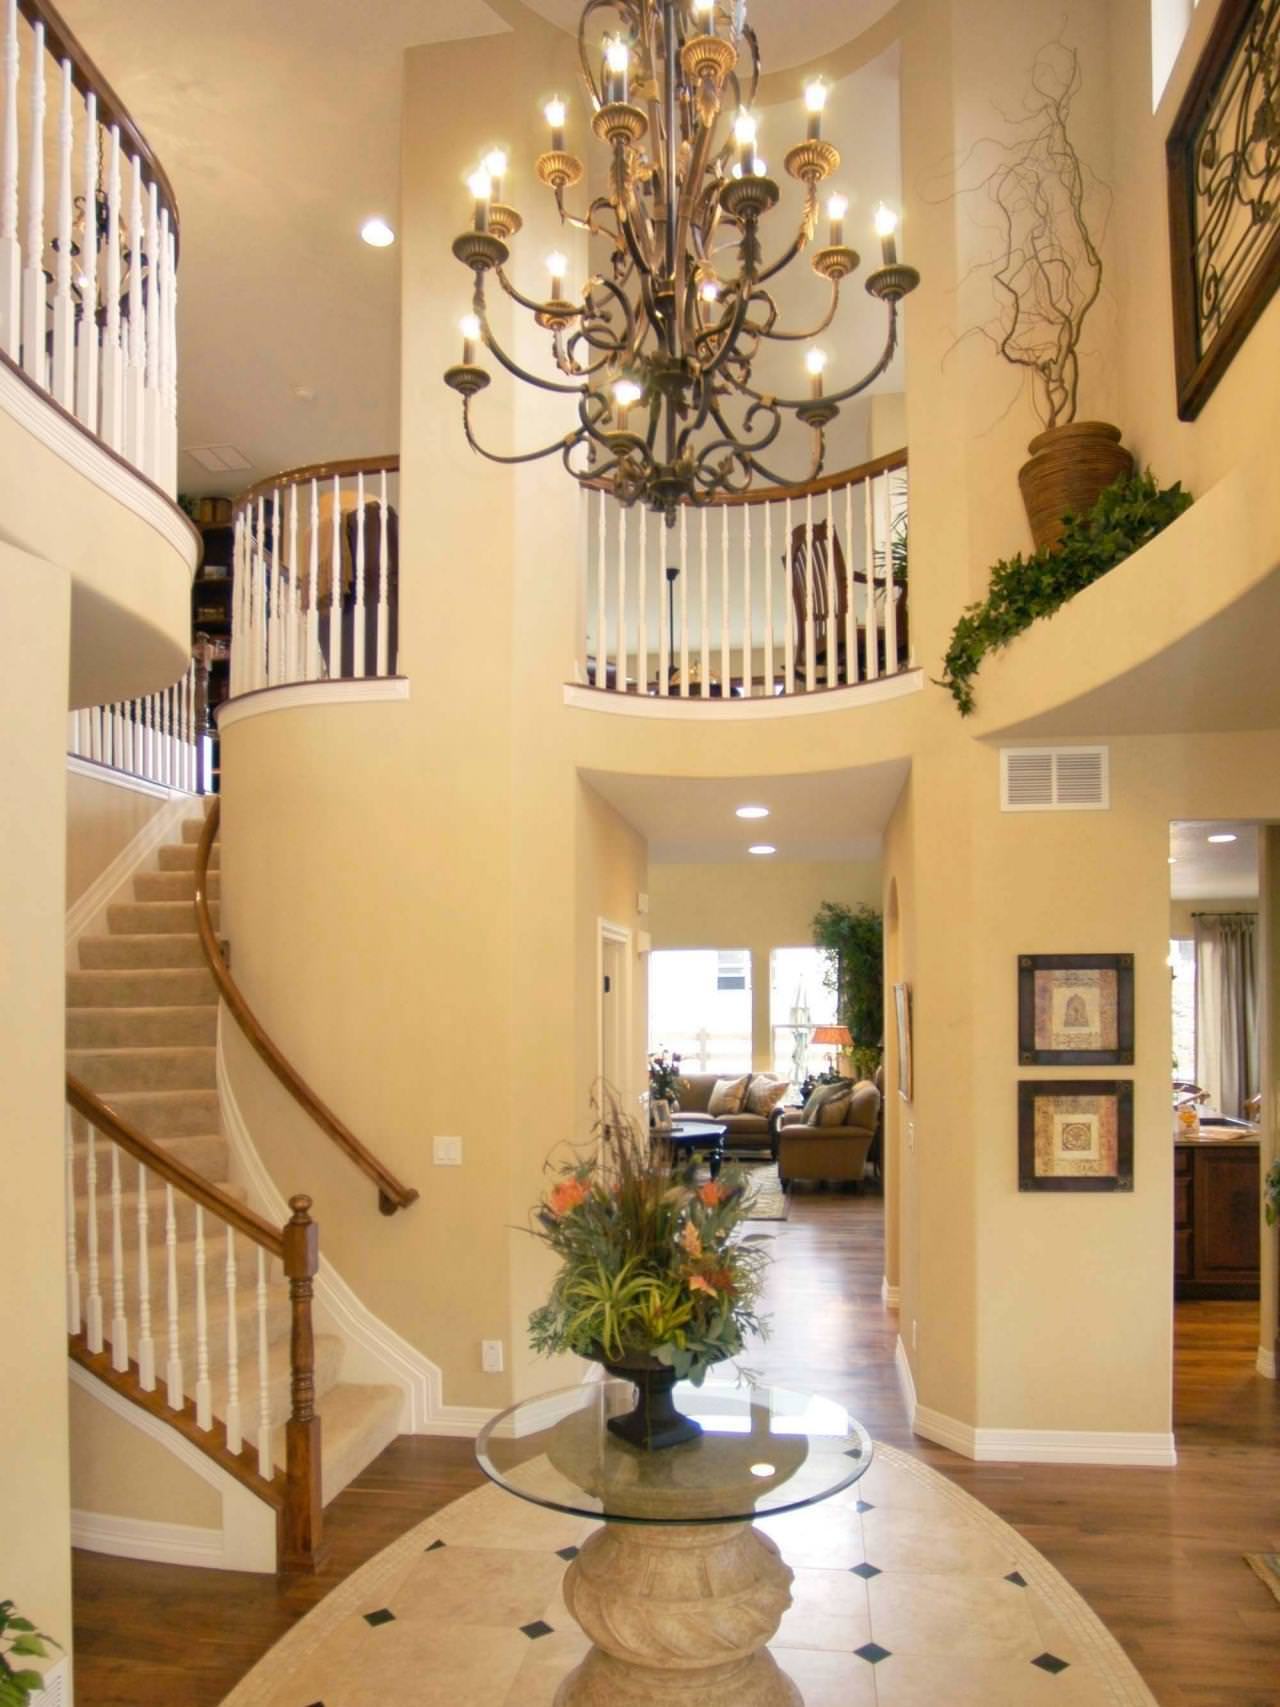 Best Light Fixtures For Hallways Ideas With Chandeliers For Hallways (Image 4 of 15)